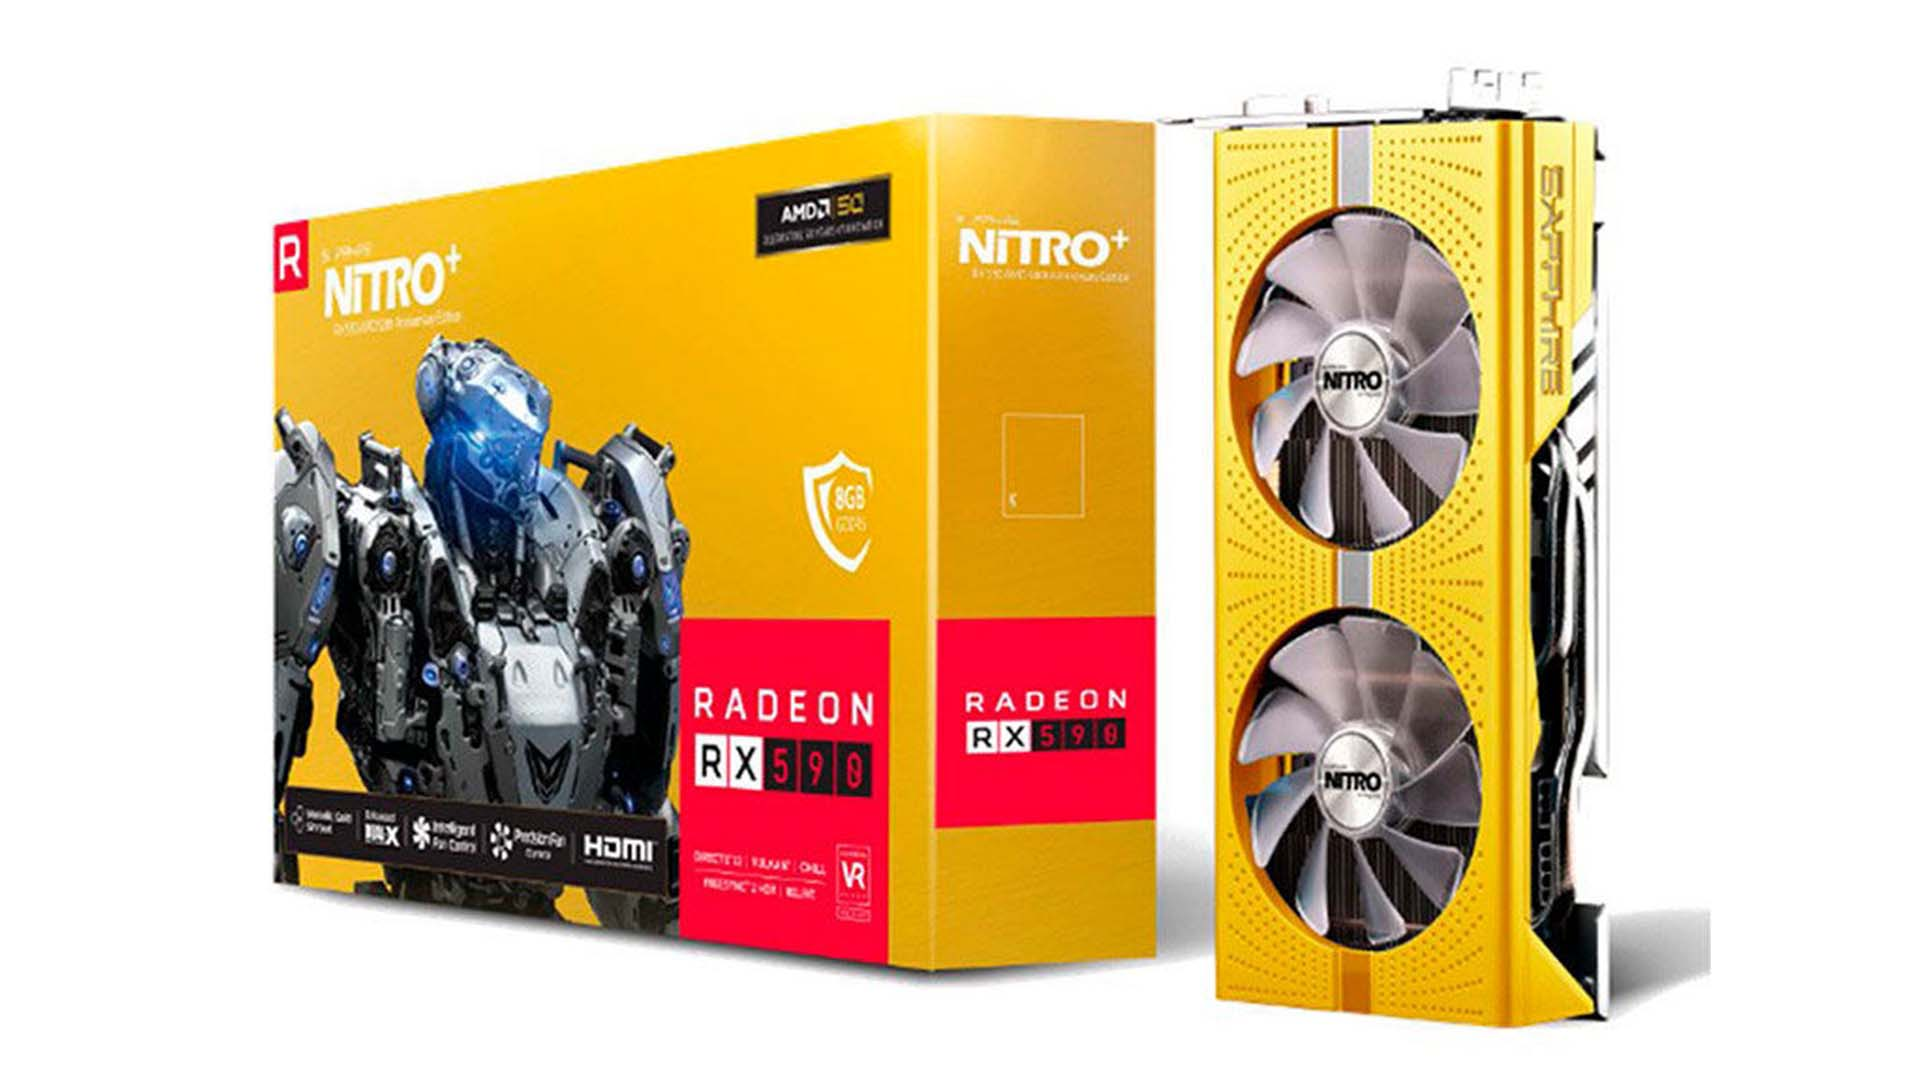 Sapphire 將推「AMD 50th Anniversary Edition」Nitro+ Radeon RX 590 8GB 顯示卡